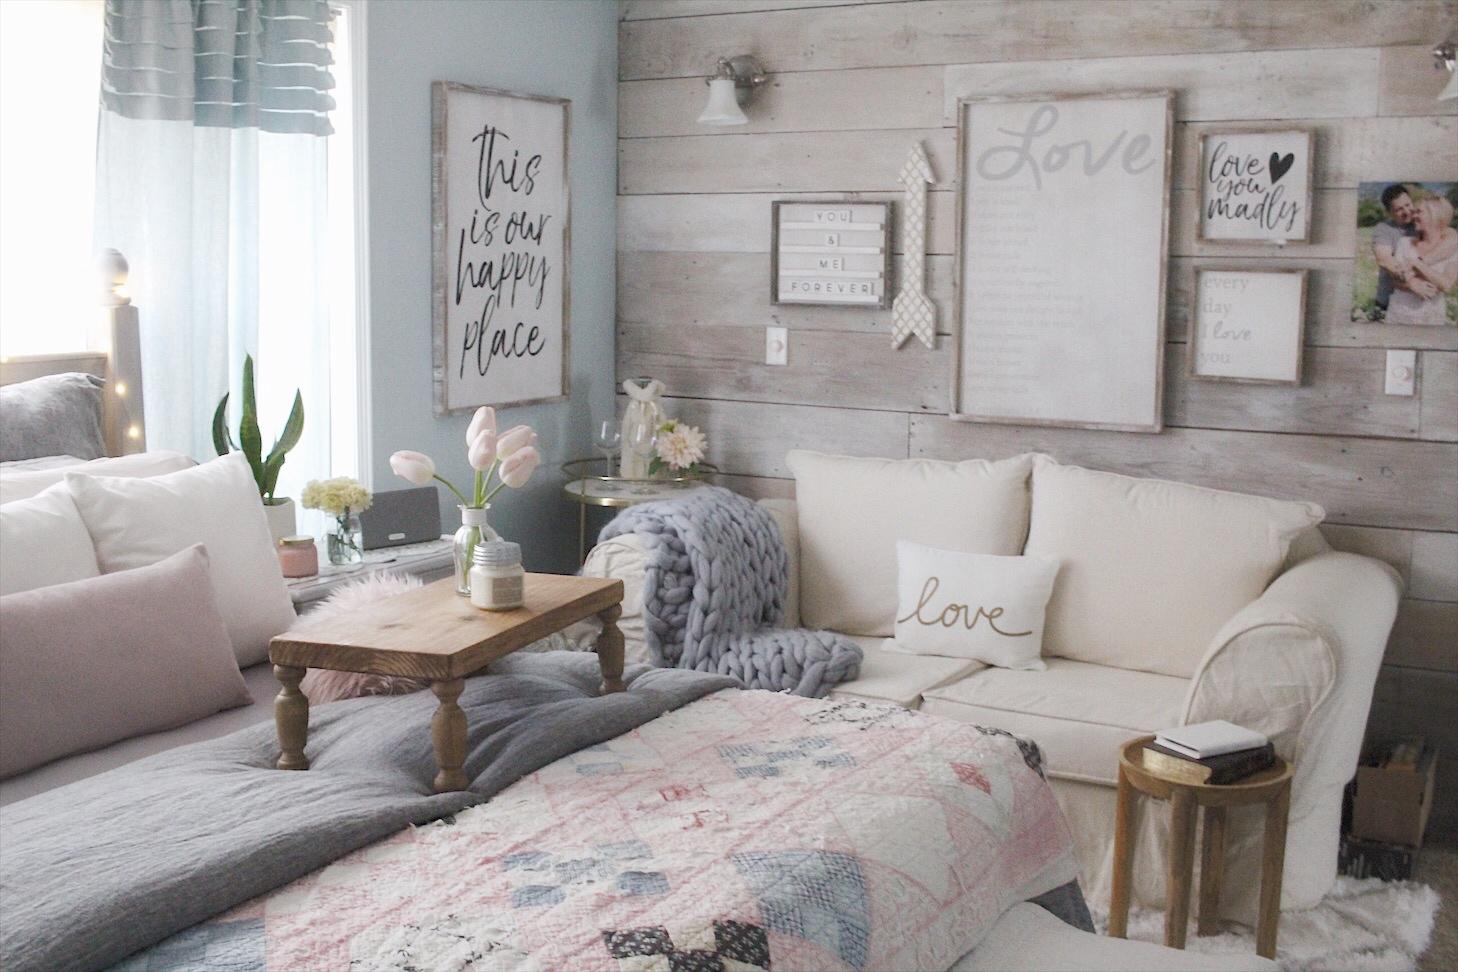 Cozy Bedroom spring decor - small shop support